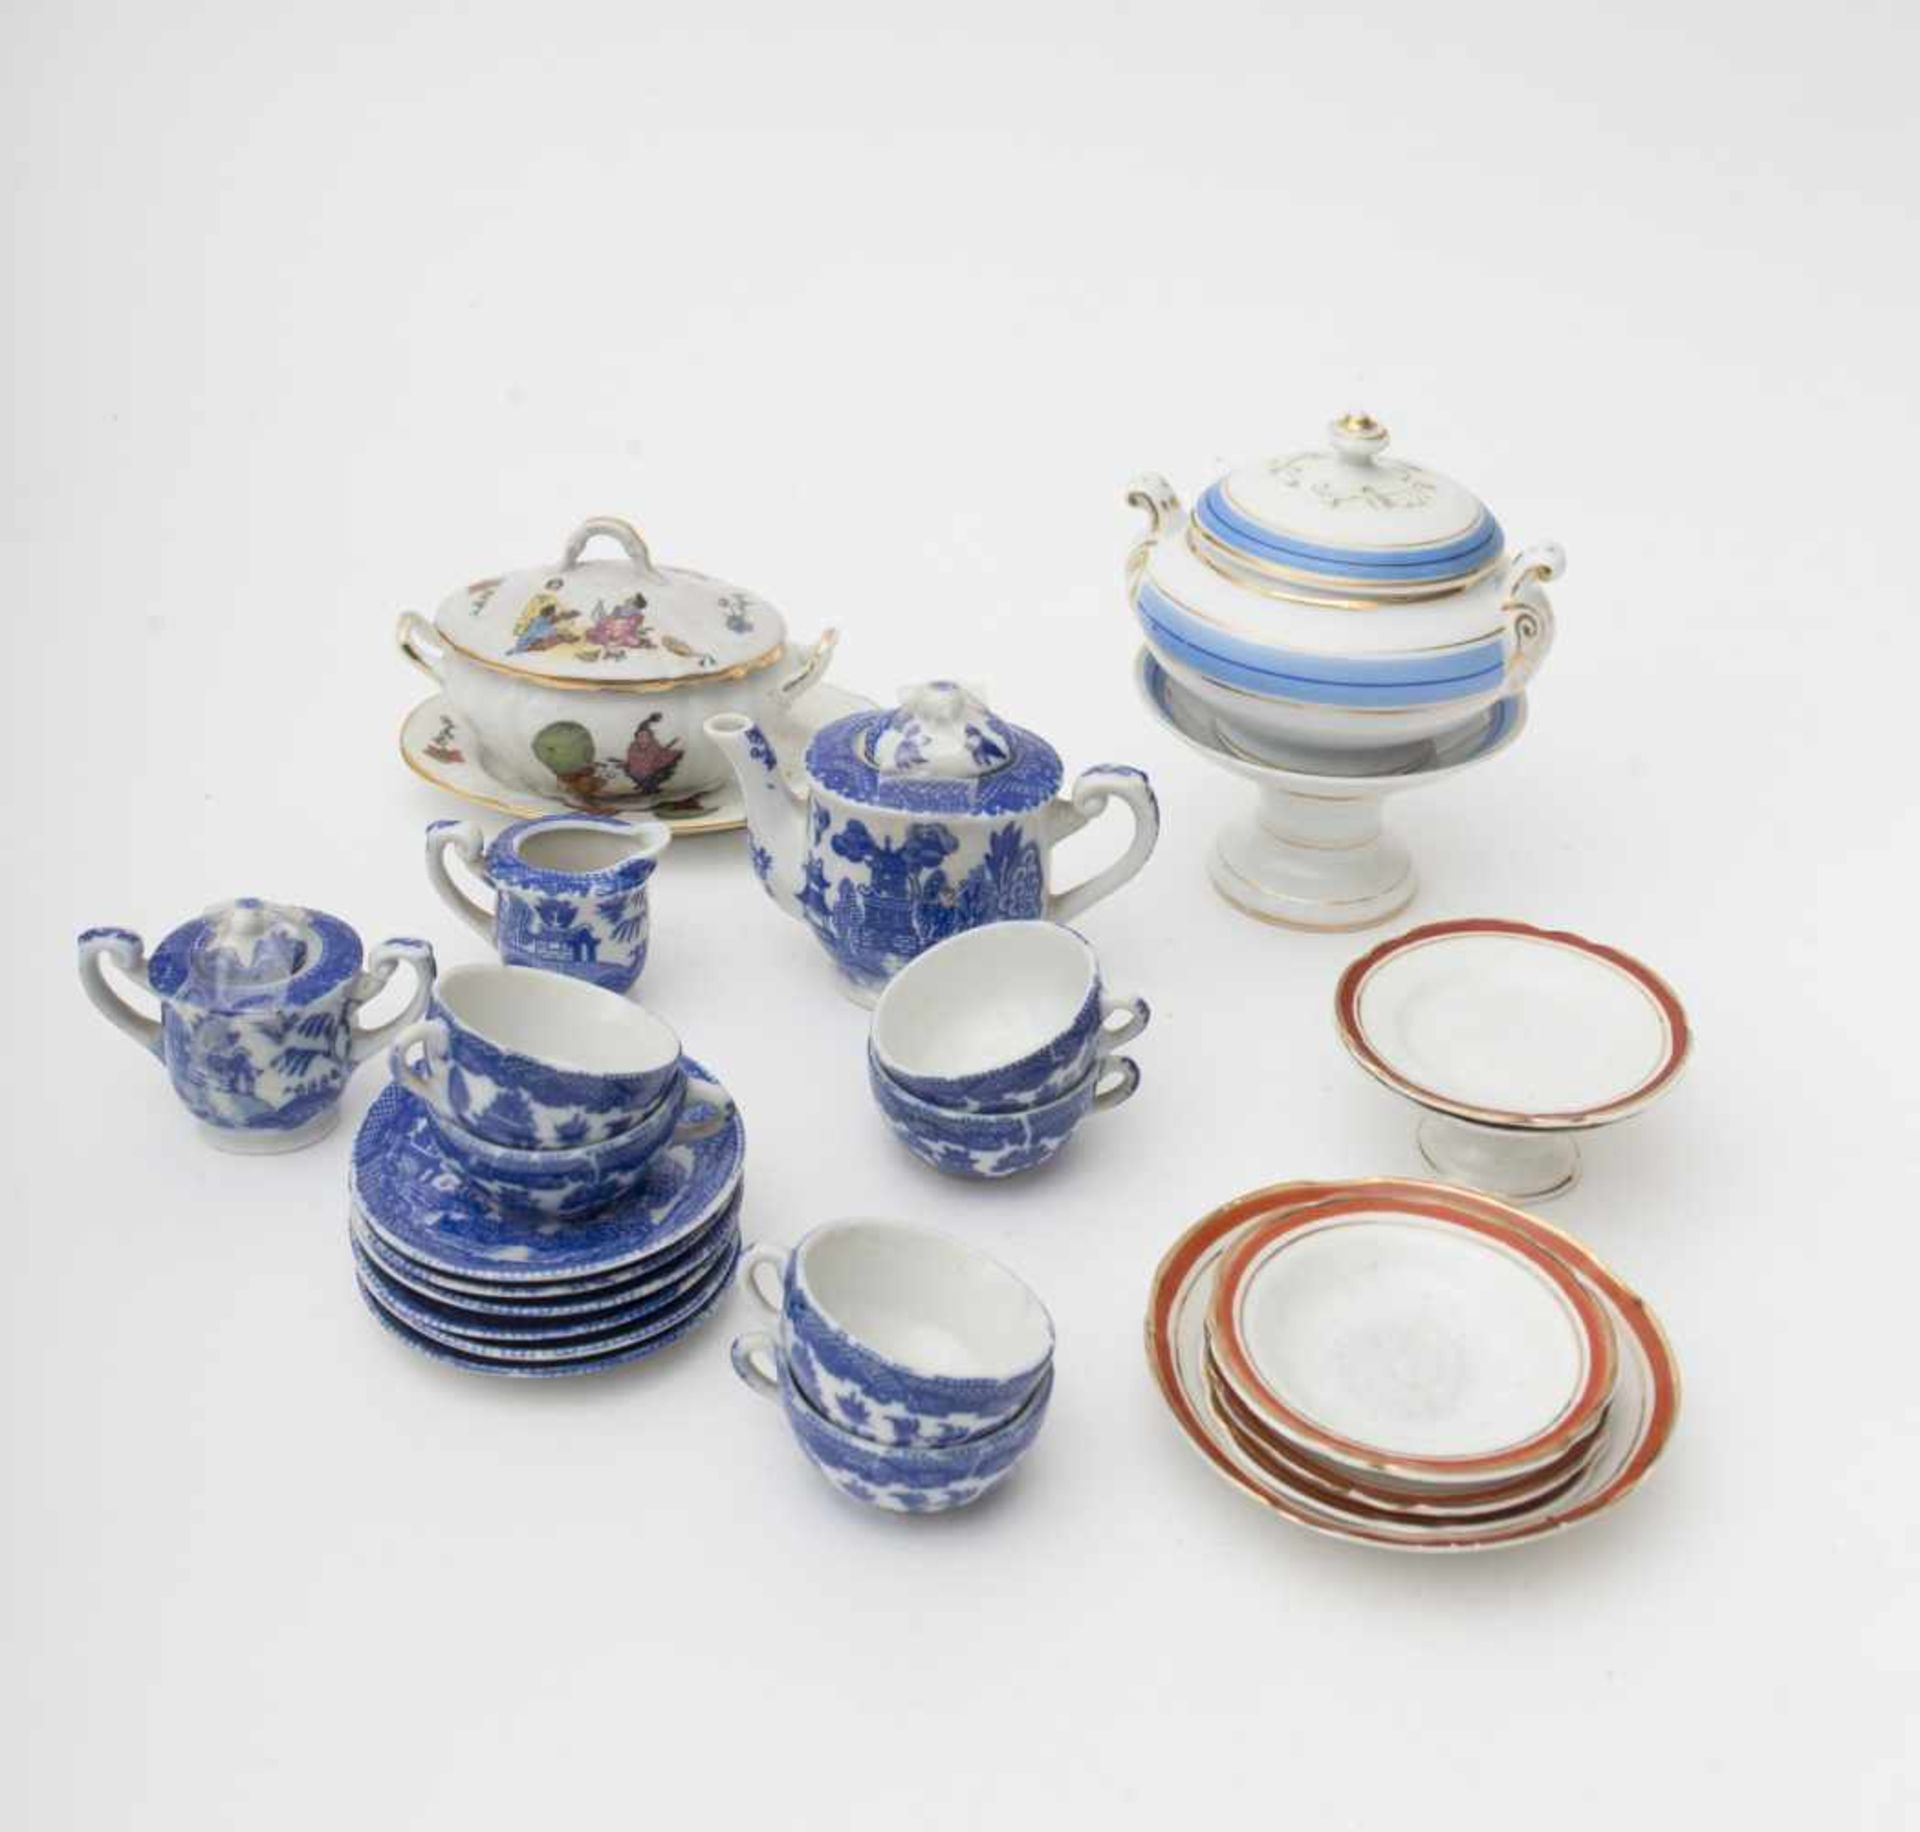 Parts of dinnerware set for dinner, and Asian-inspired coffee set.